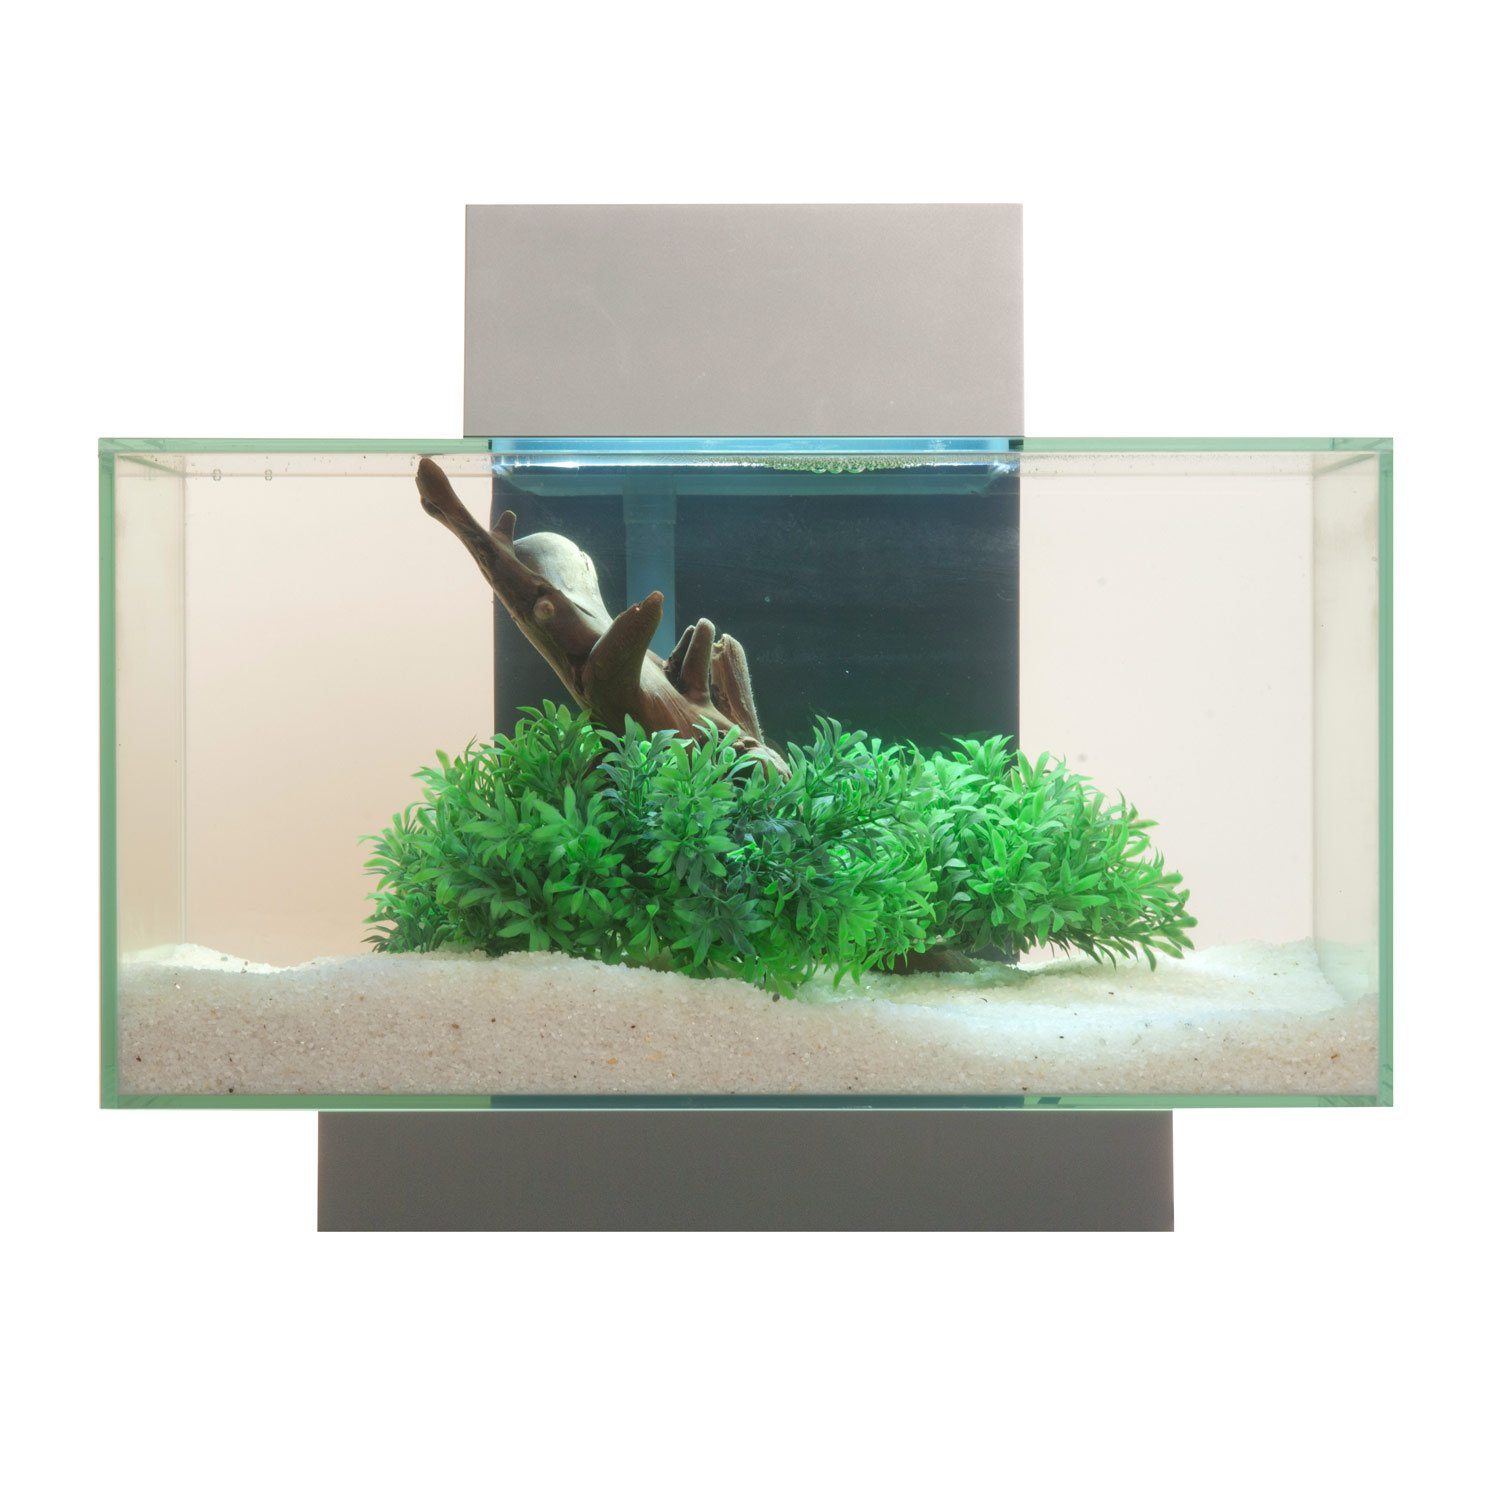 Aquarium fish tank starter kit - Fluval Edge Aquarium Kit In Silver